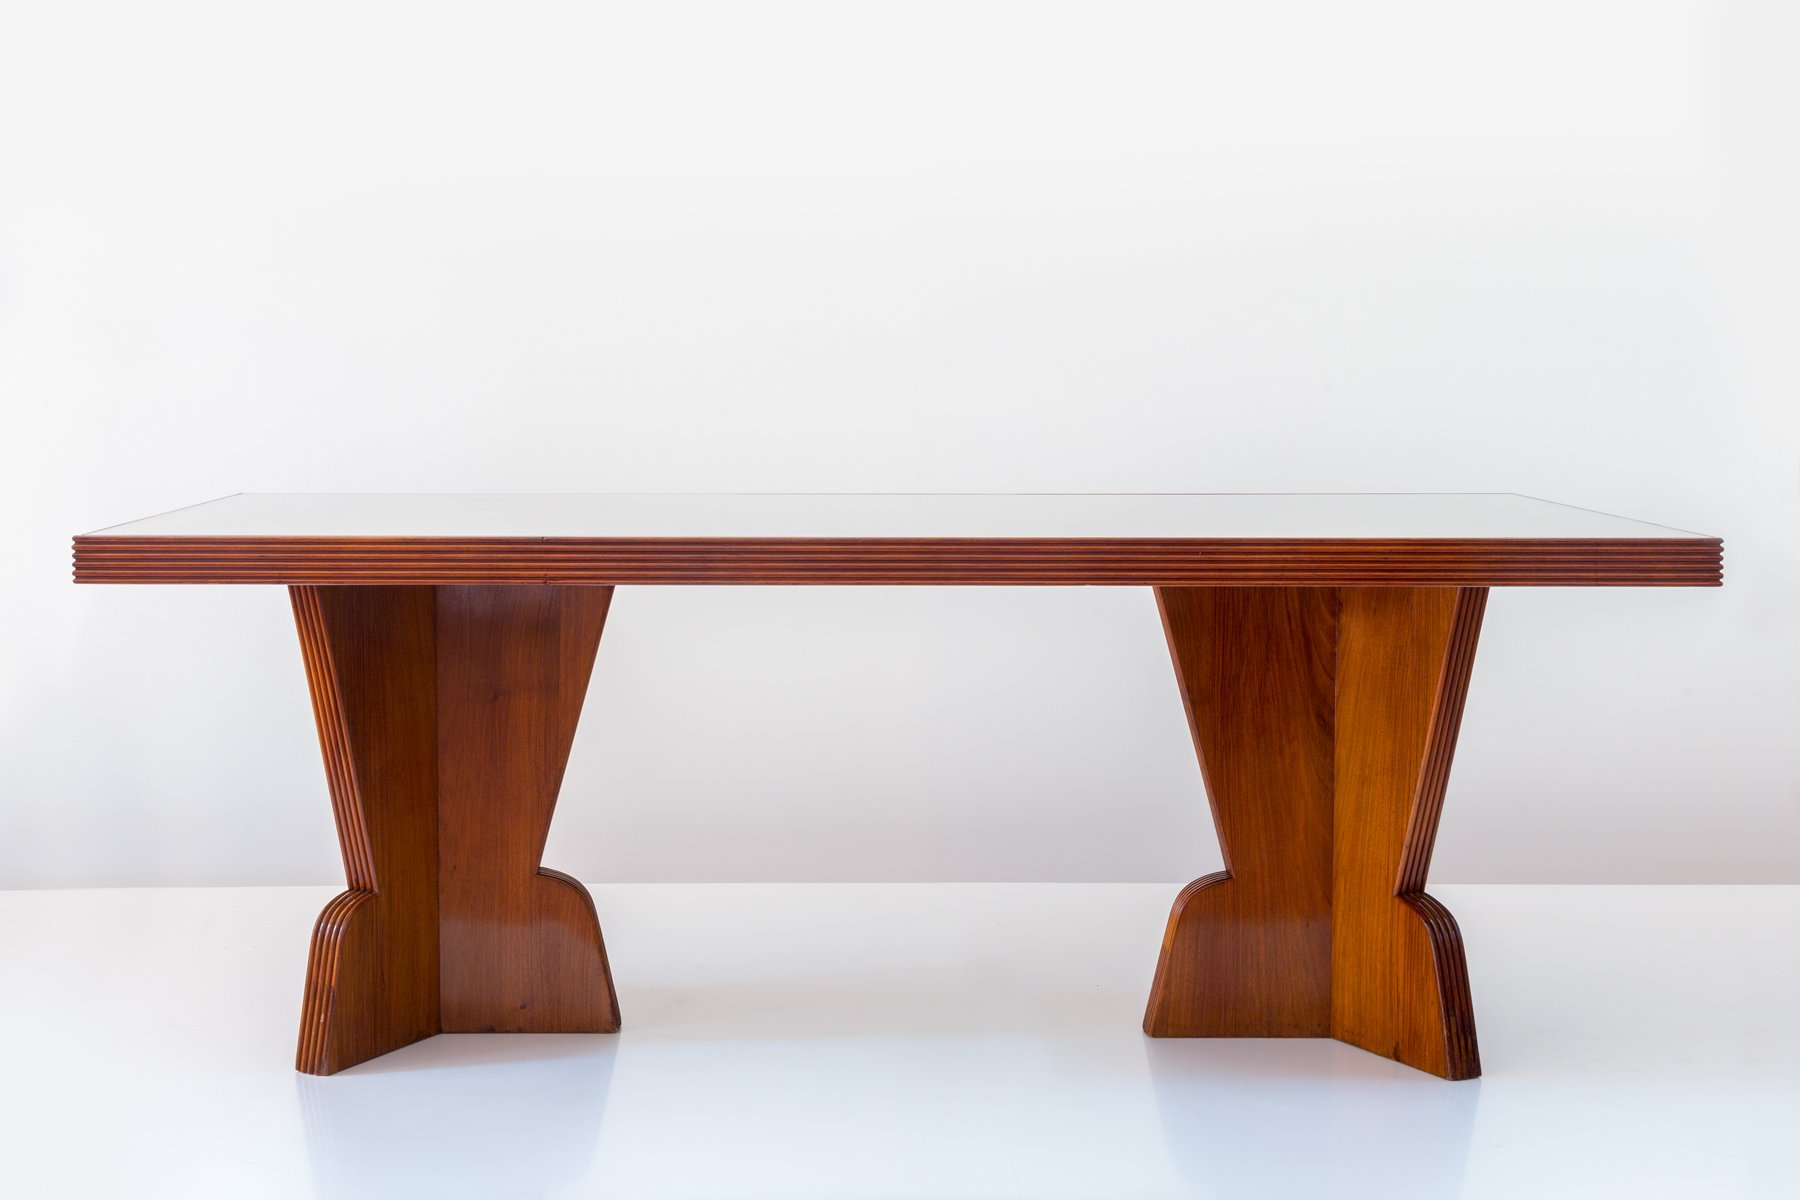 Executive Conference Table by Gio Ponti 1939 for sale at Pamono